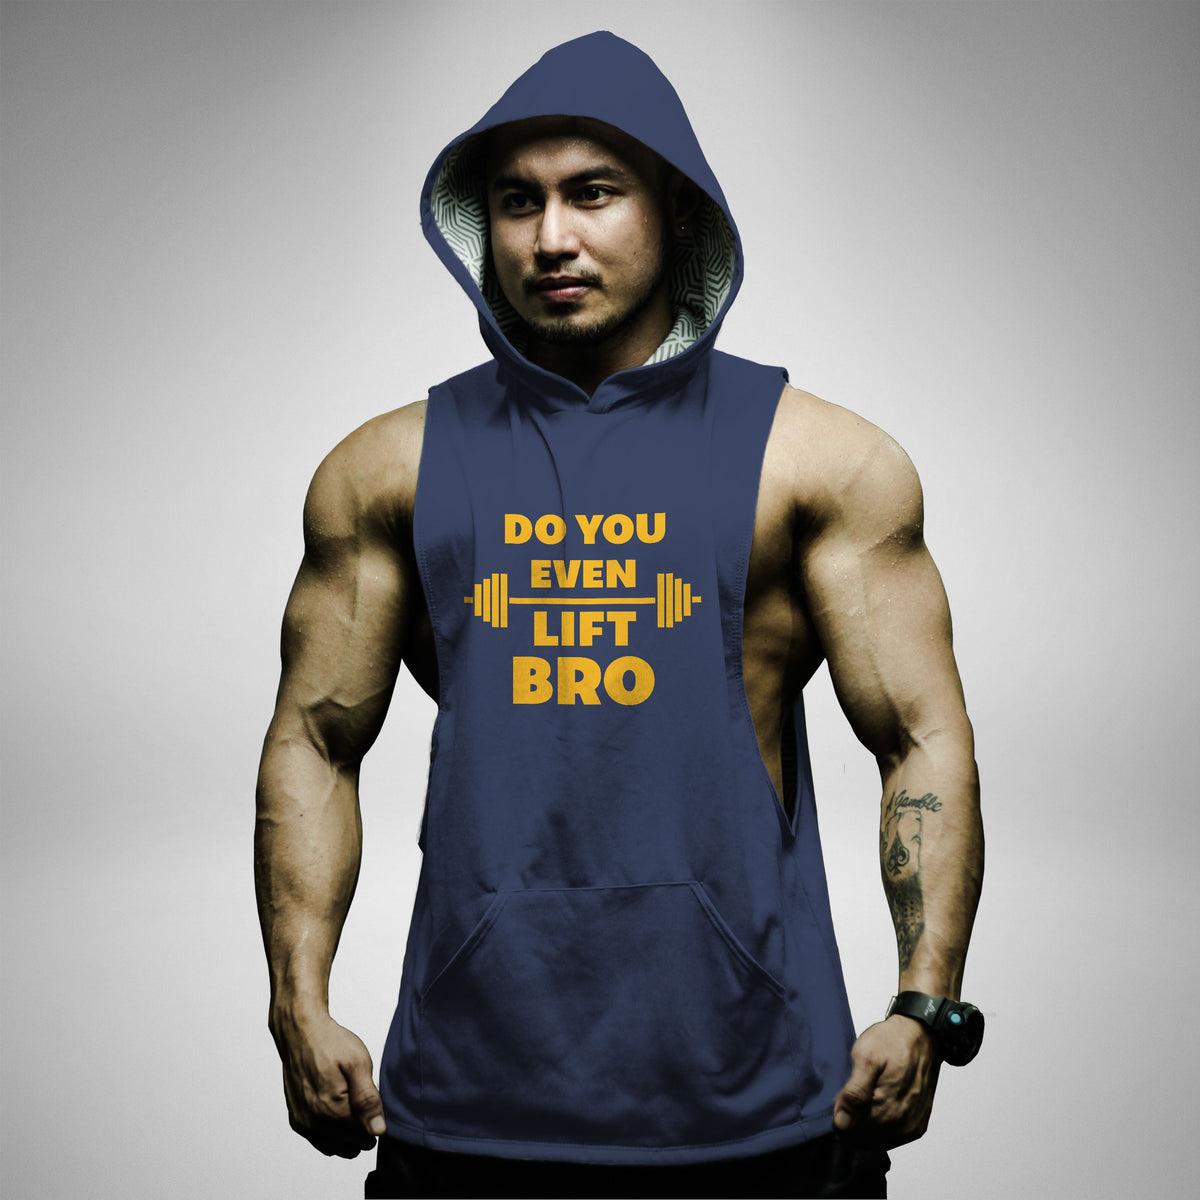 AH118 Do You Even Lift Bro Sleeveless Hoodie